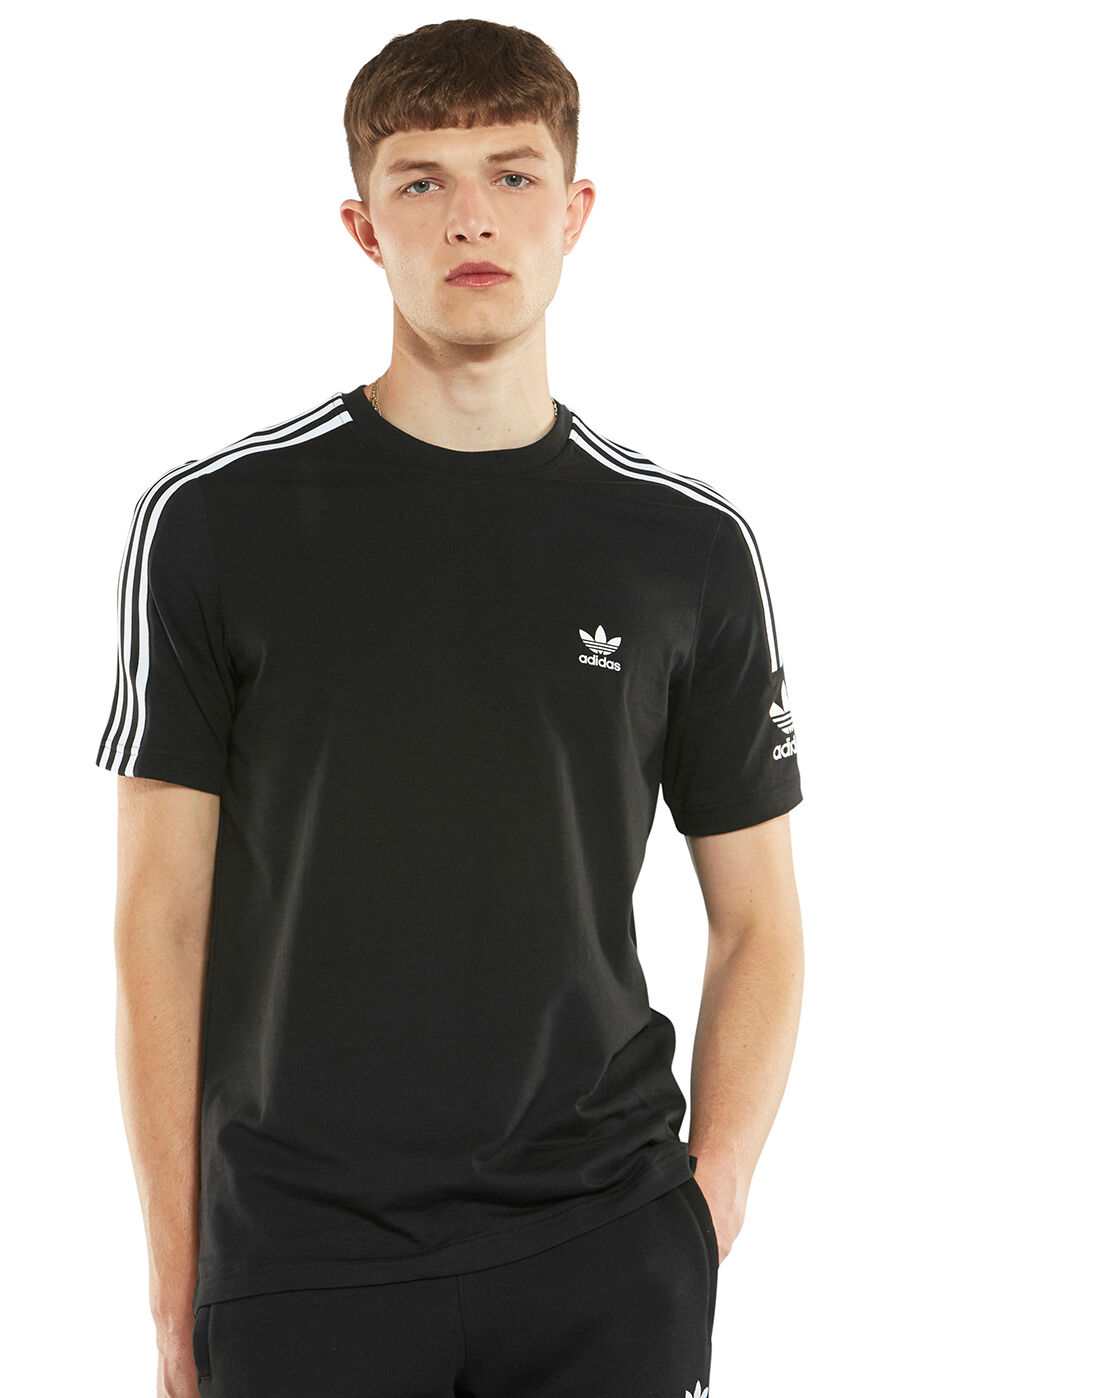 adidas Originals lock up t shirt in black